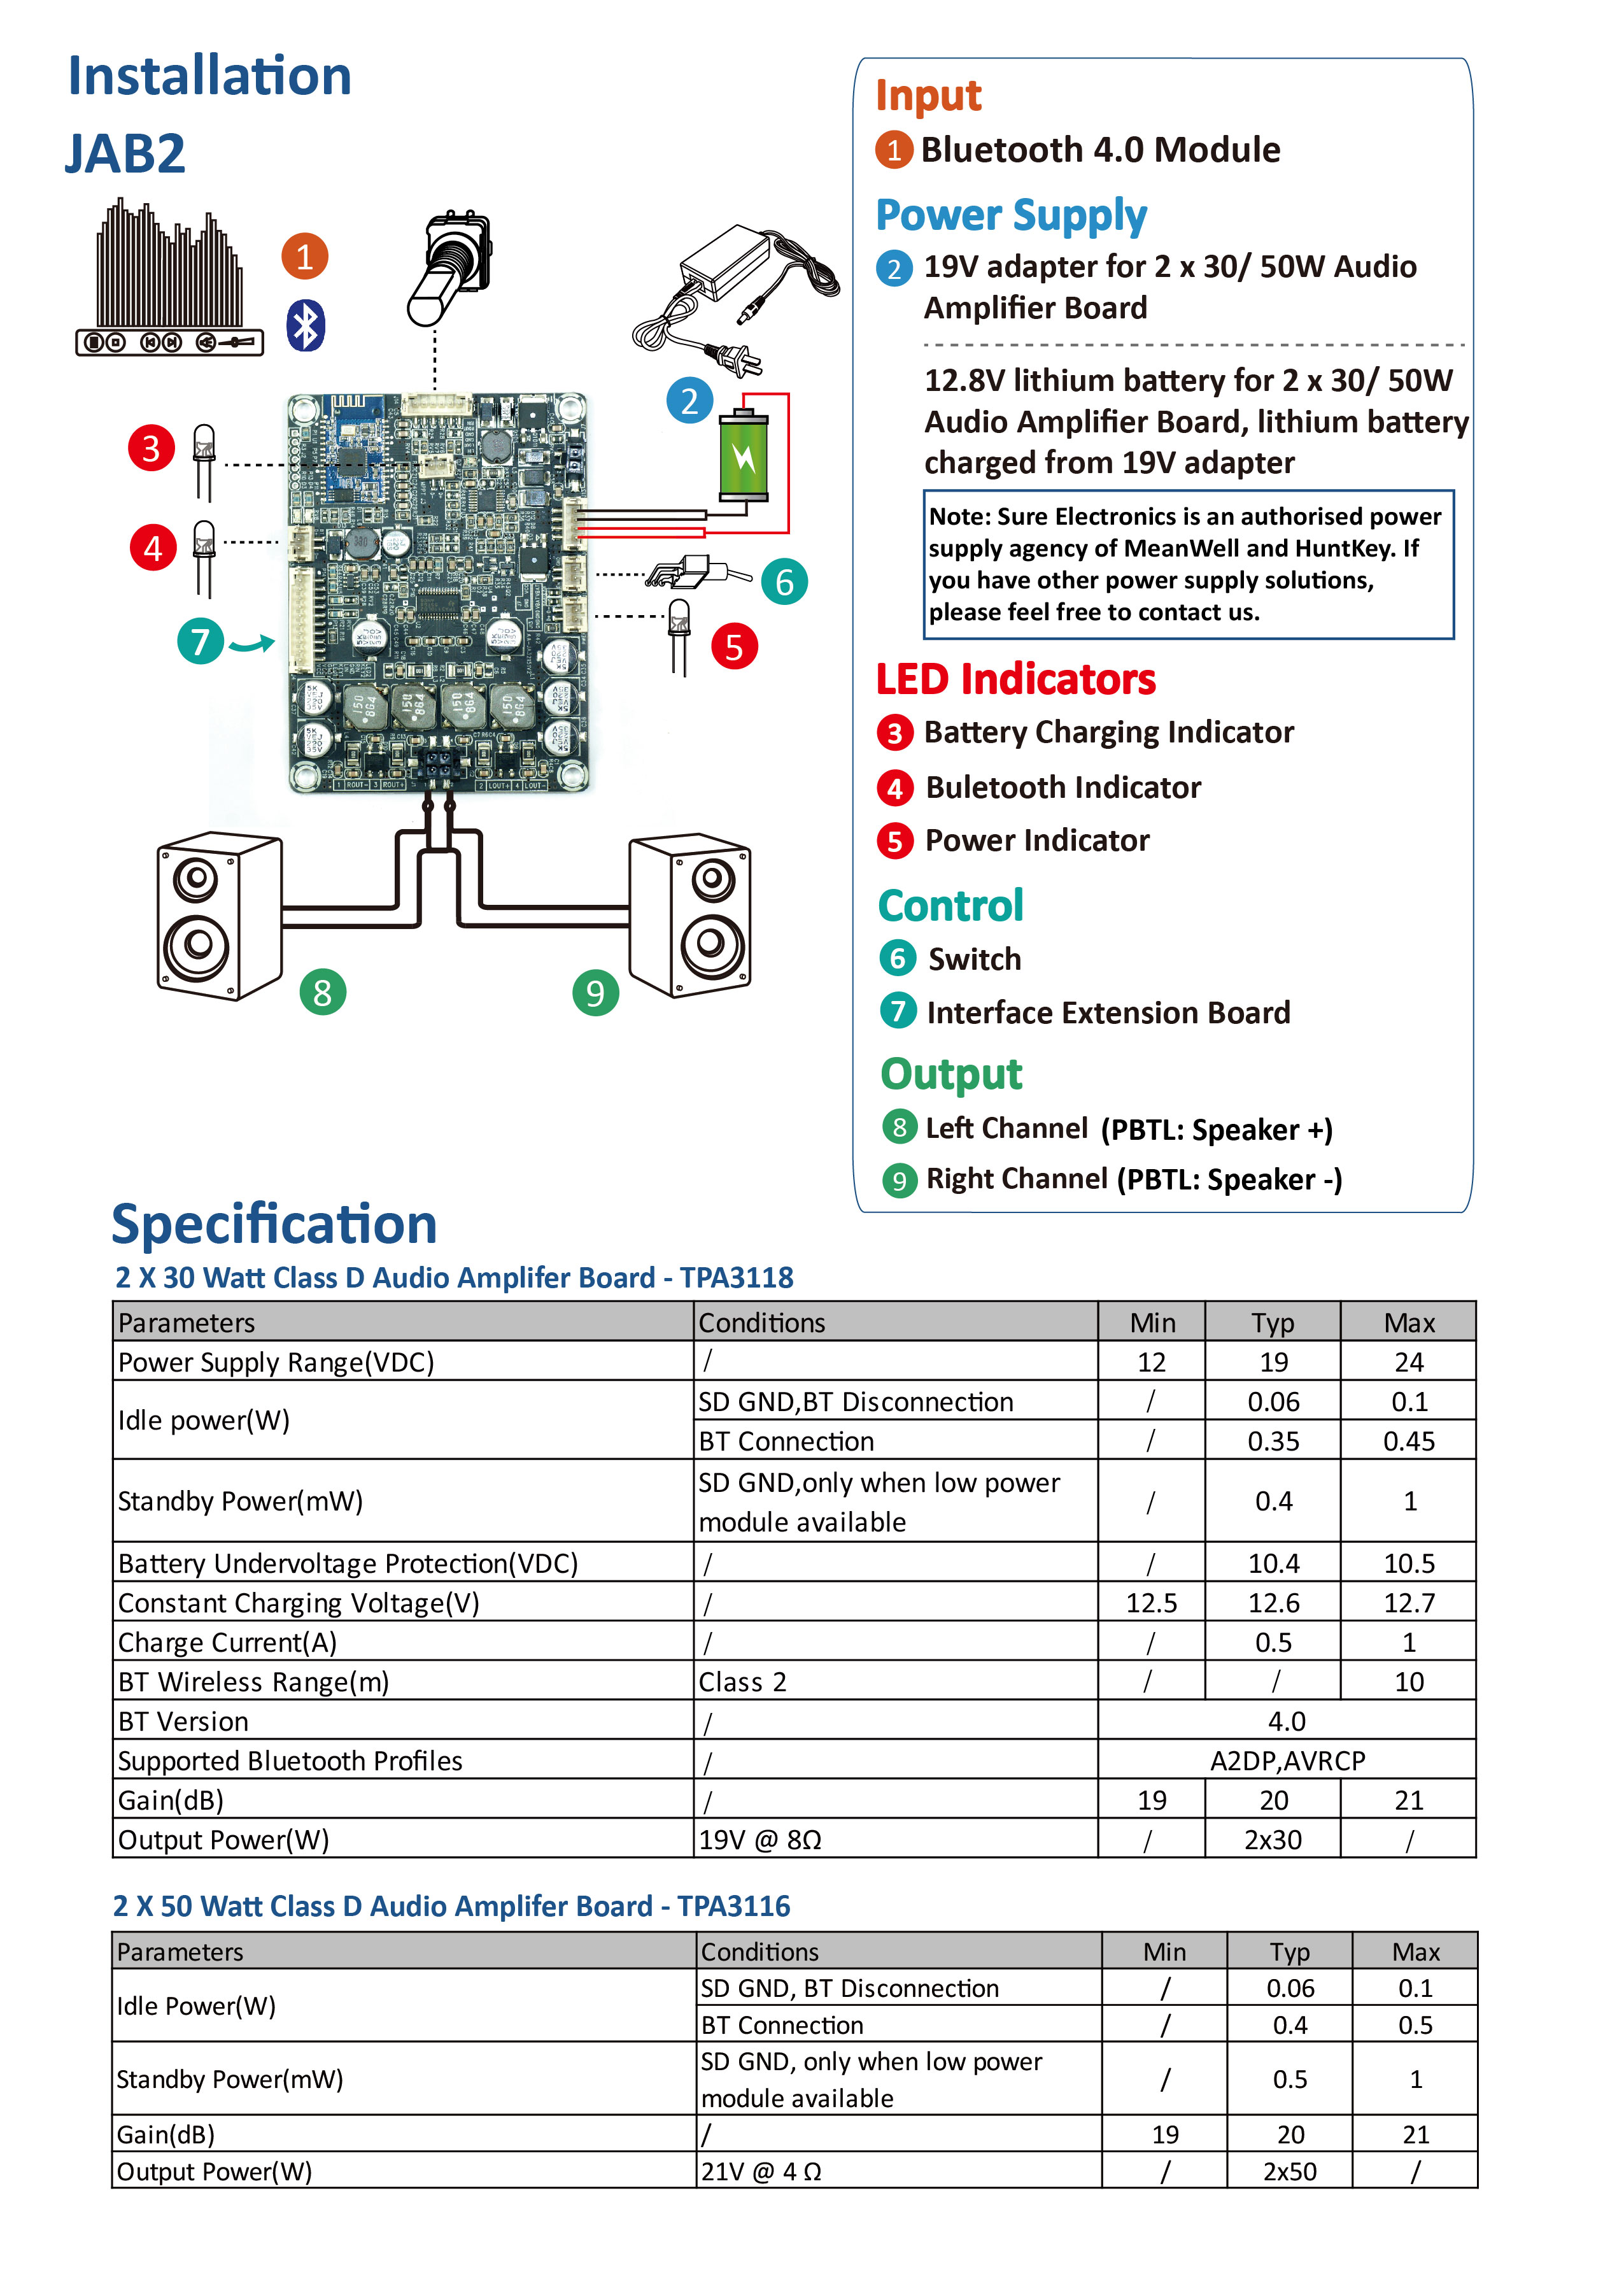 Sure Electronics Webstore 2 X 50 Watt 4 Ohm Class D Audio Amplifier Also Subwoofer Wiring Diagram Furthermore How To Wire Dual Recommend Power Supply Adapter